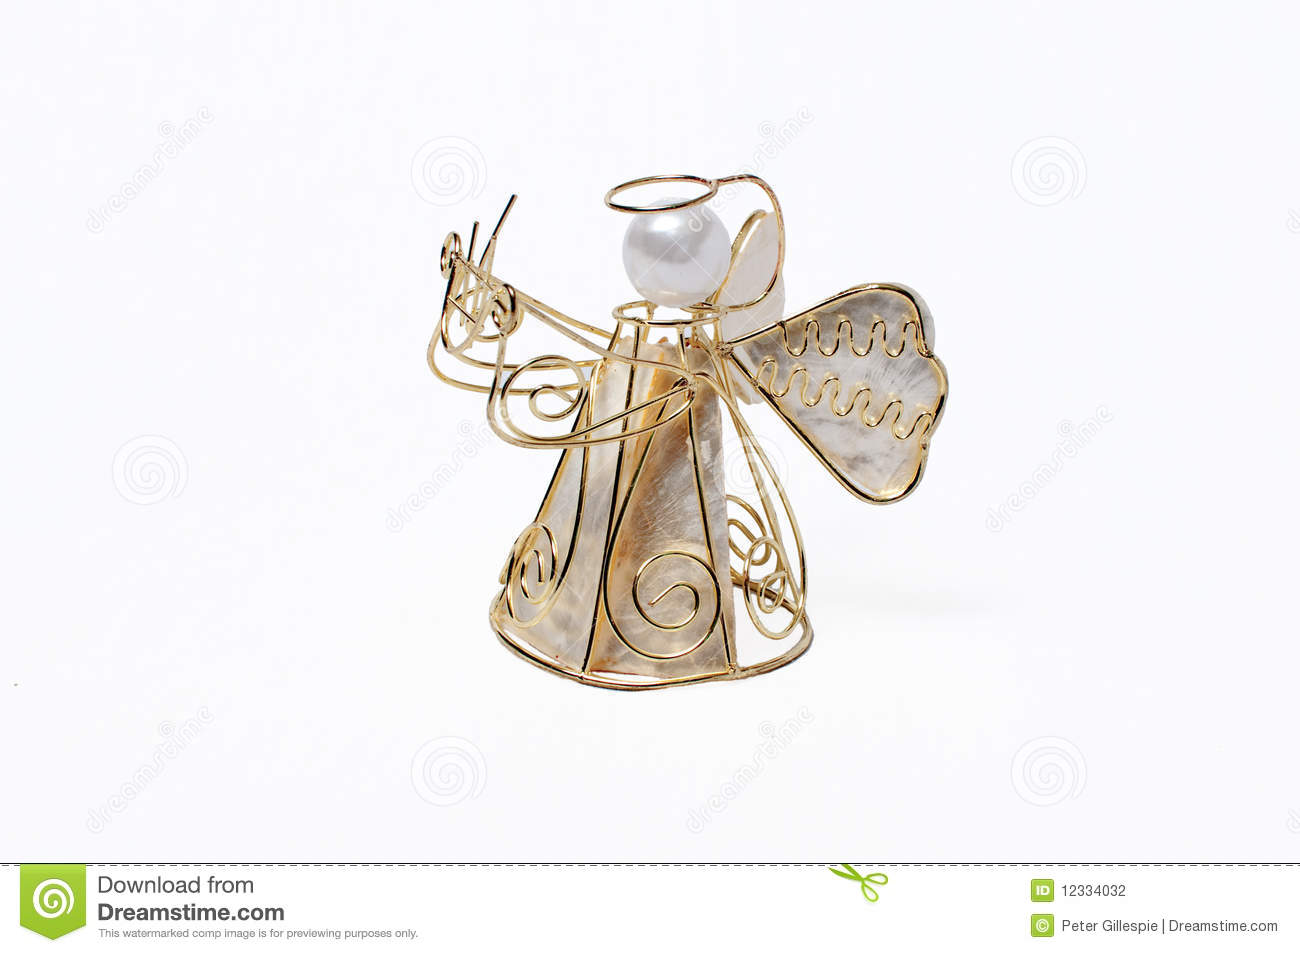 a christmas angel made of gold wire on a white background - A Christmas Angel